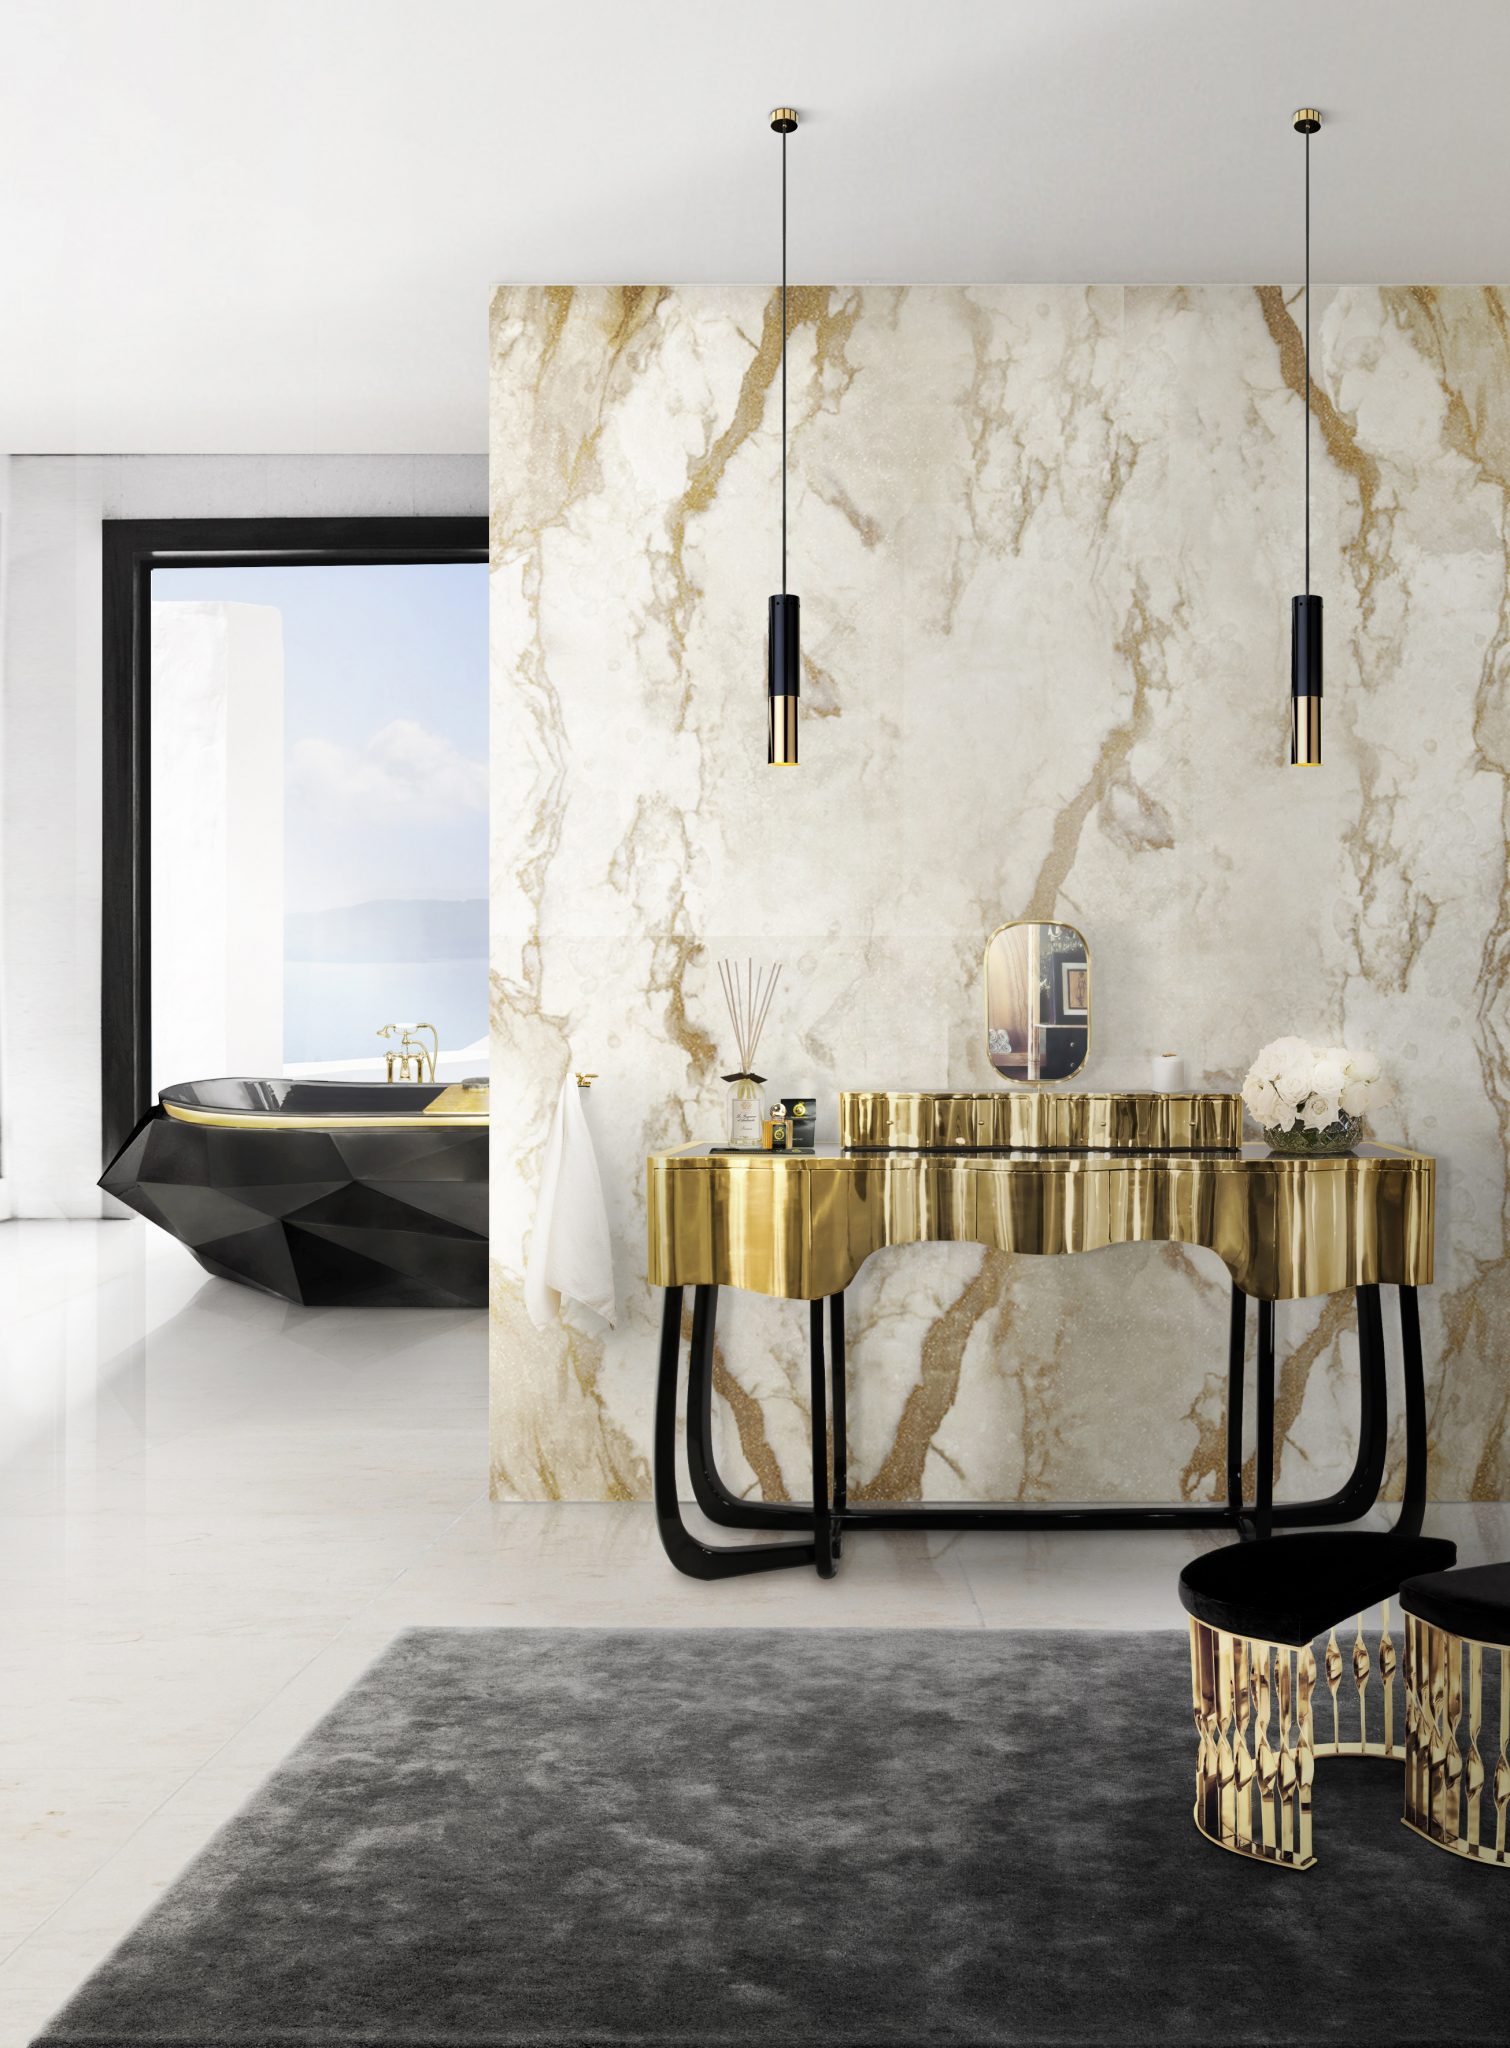 THE BEST LUXURY BATHROOM LIGHTING